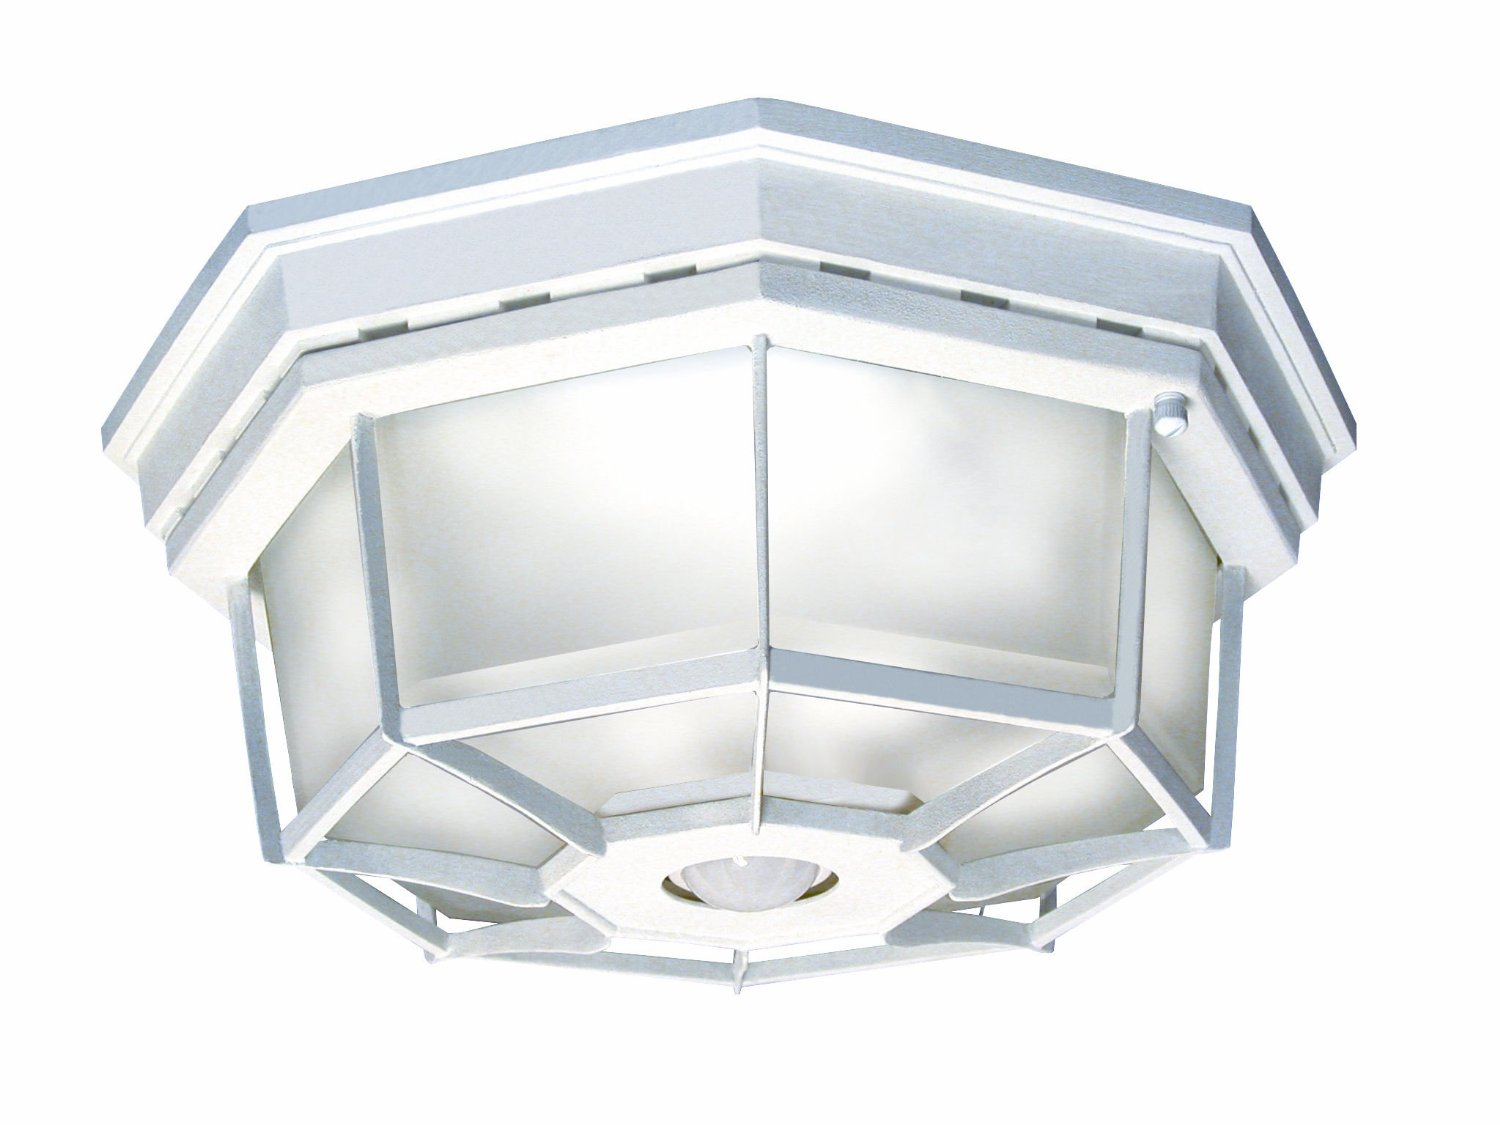 Motion Sensor Outdoor Ceiling Light A Plus Design Reference